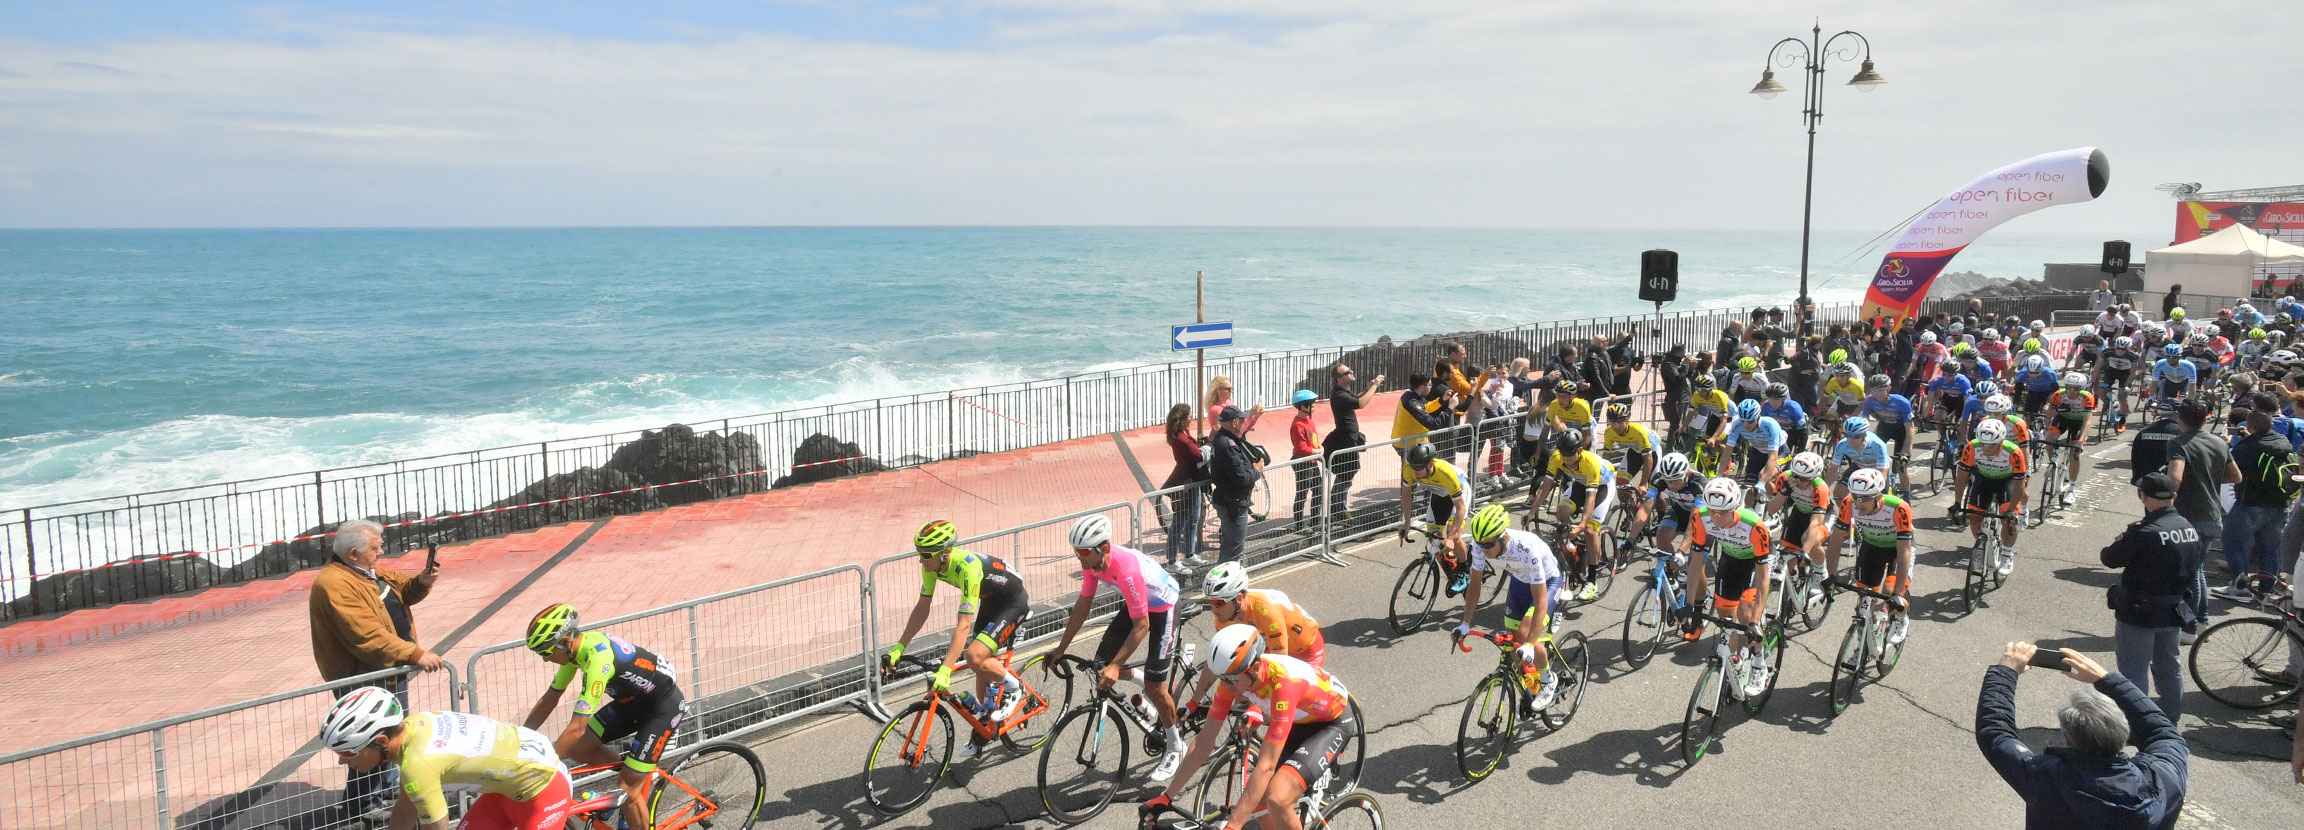 Stage 4 of Il Giro di Sicilia Open FIber 2019: Mount Etna will decide the final winner of the GC